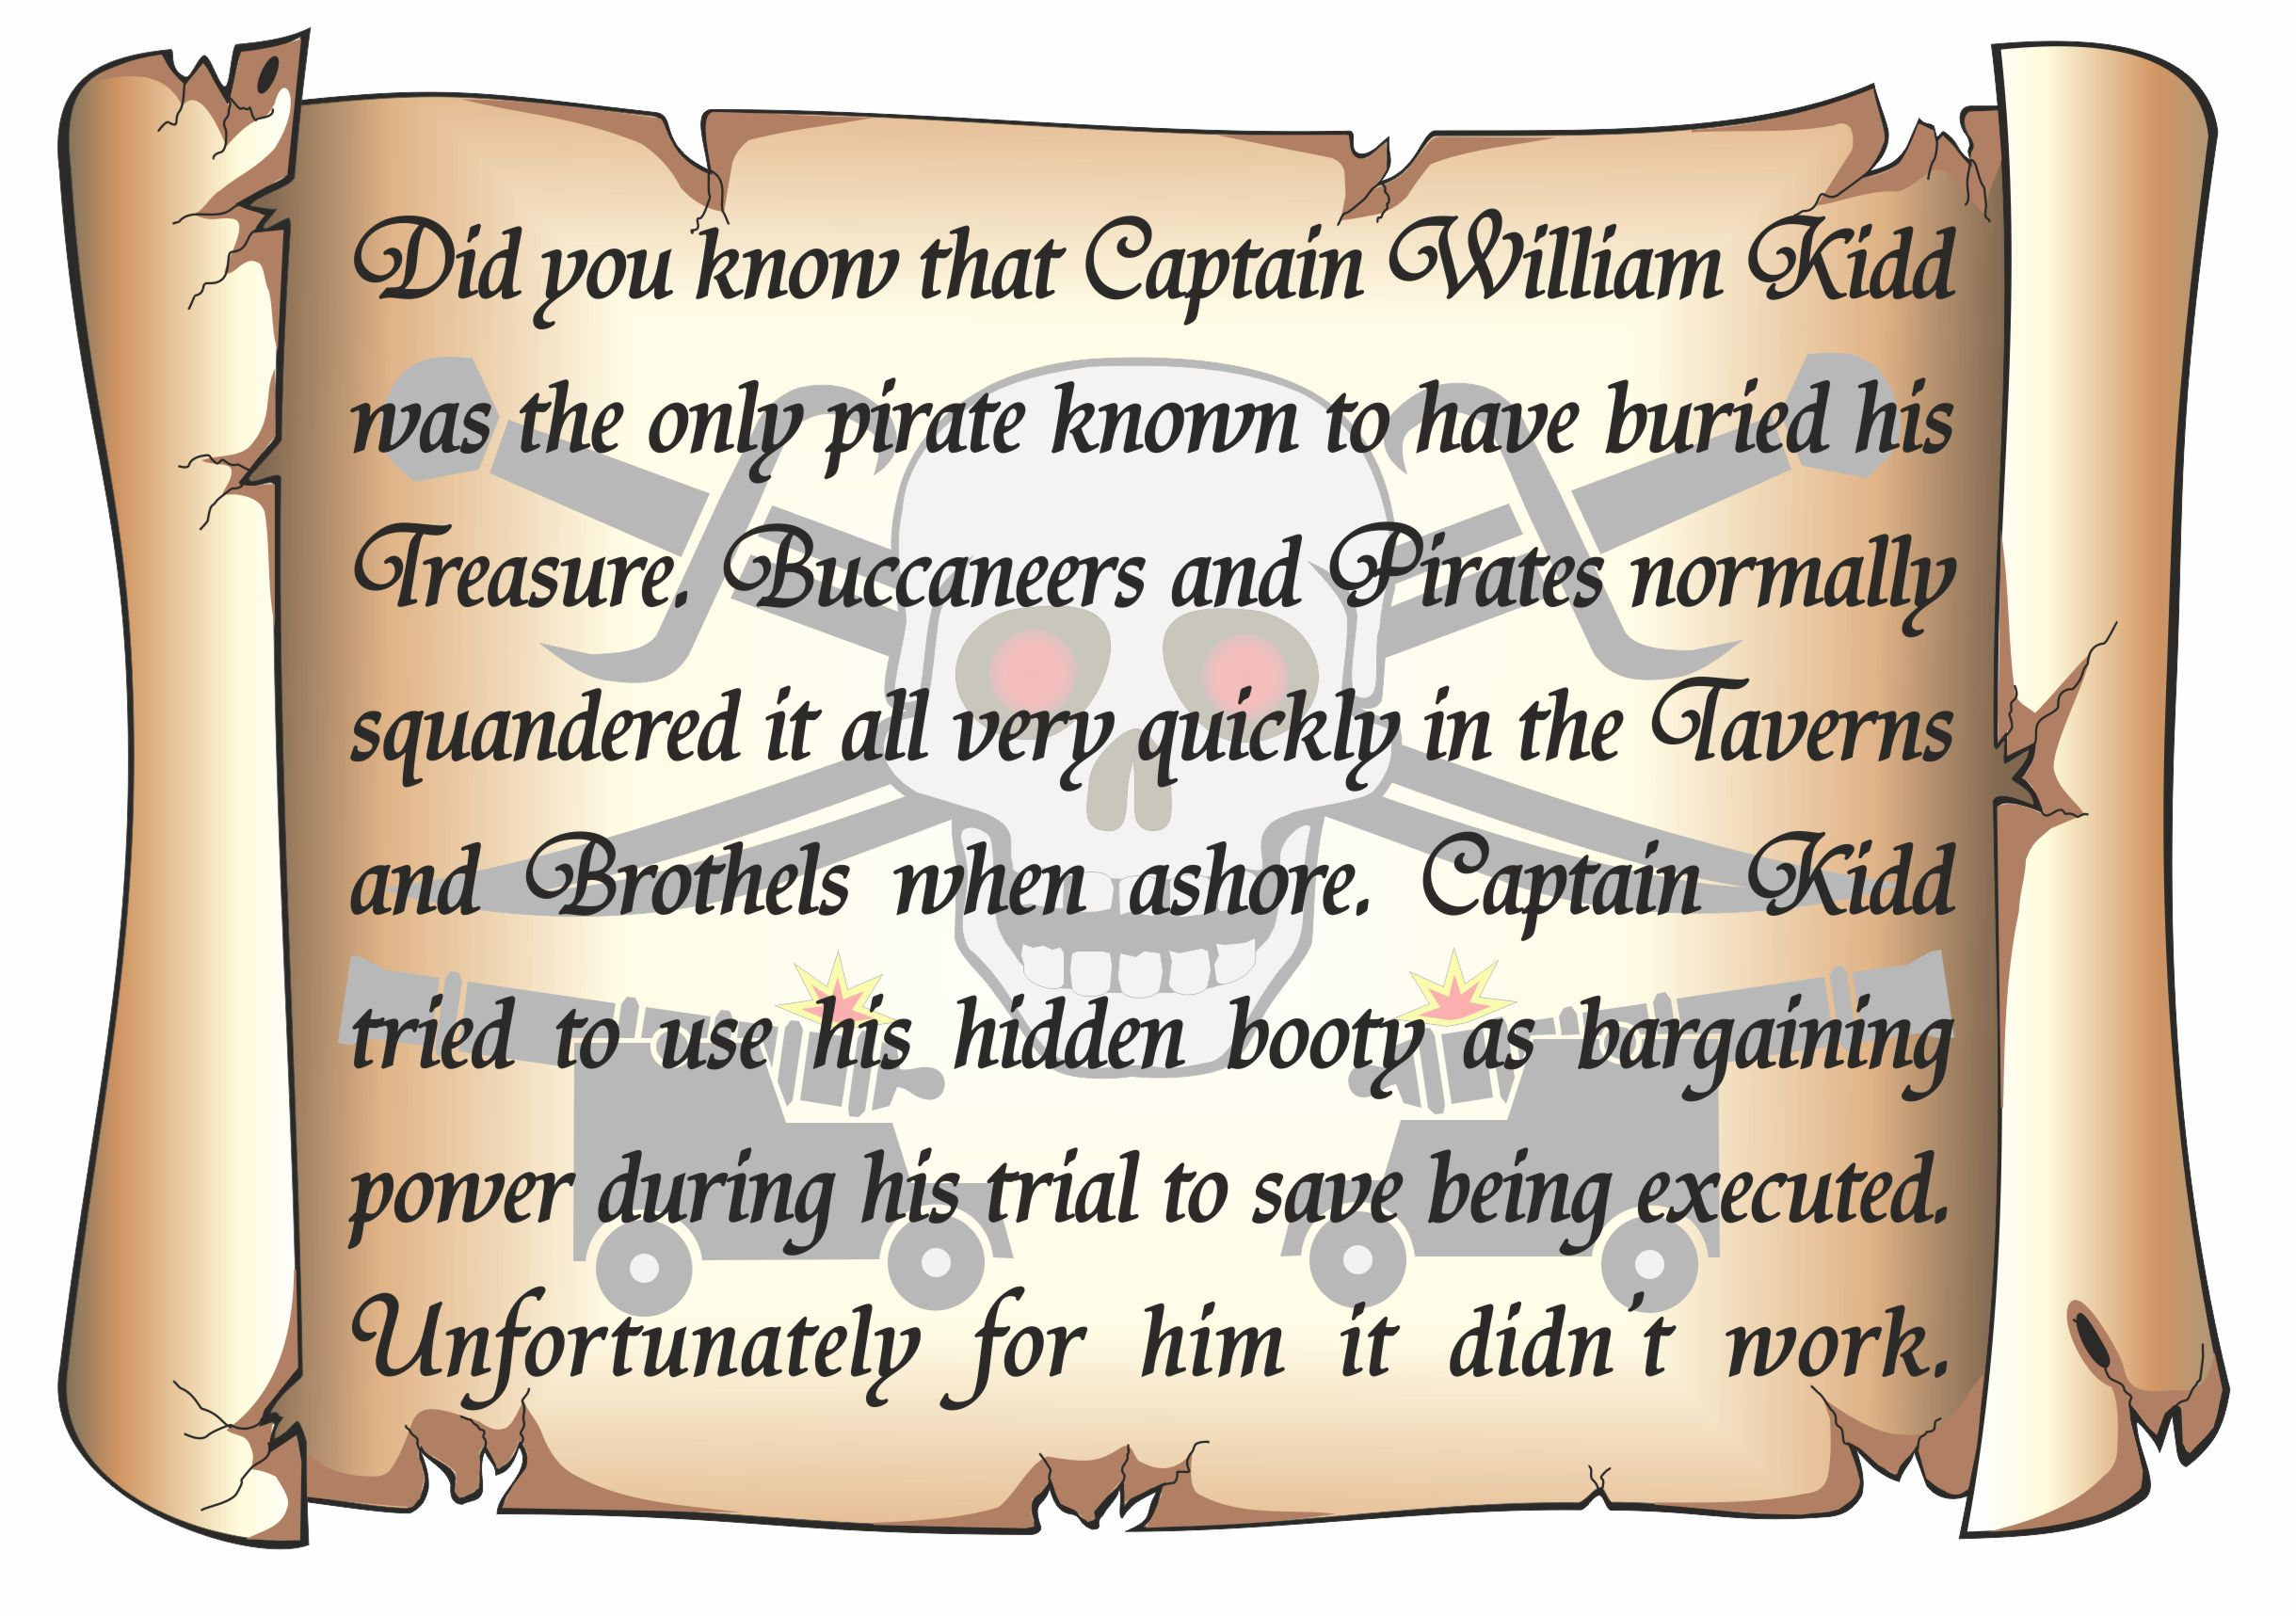 Did you know (Captain Kidd) 2